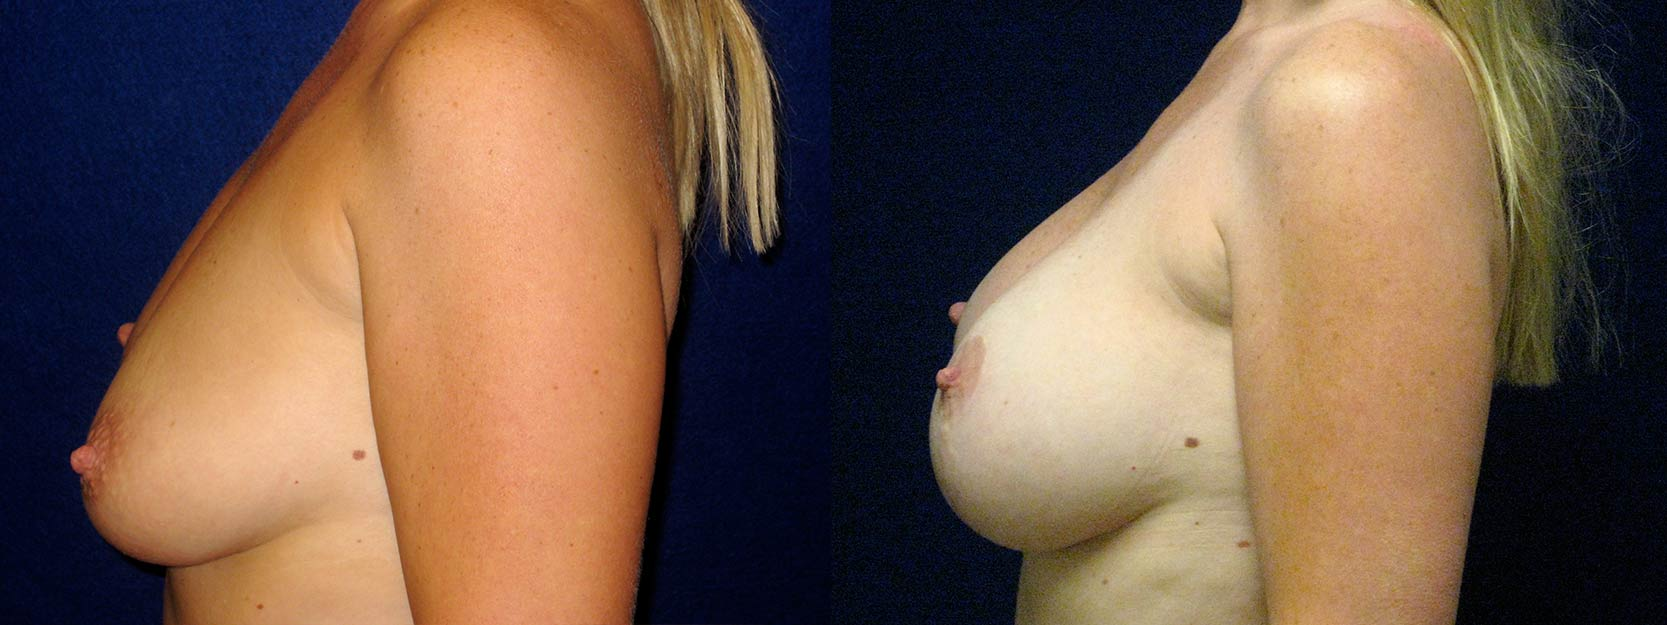 Left Profile View - Breast Augmentation with Lift - Silicone Implants